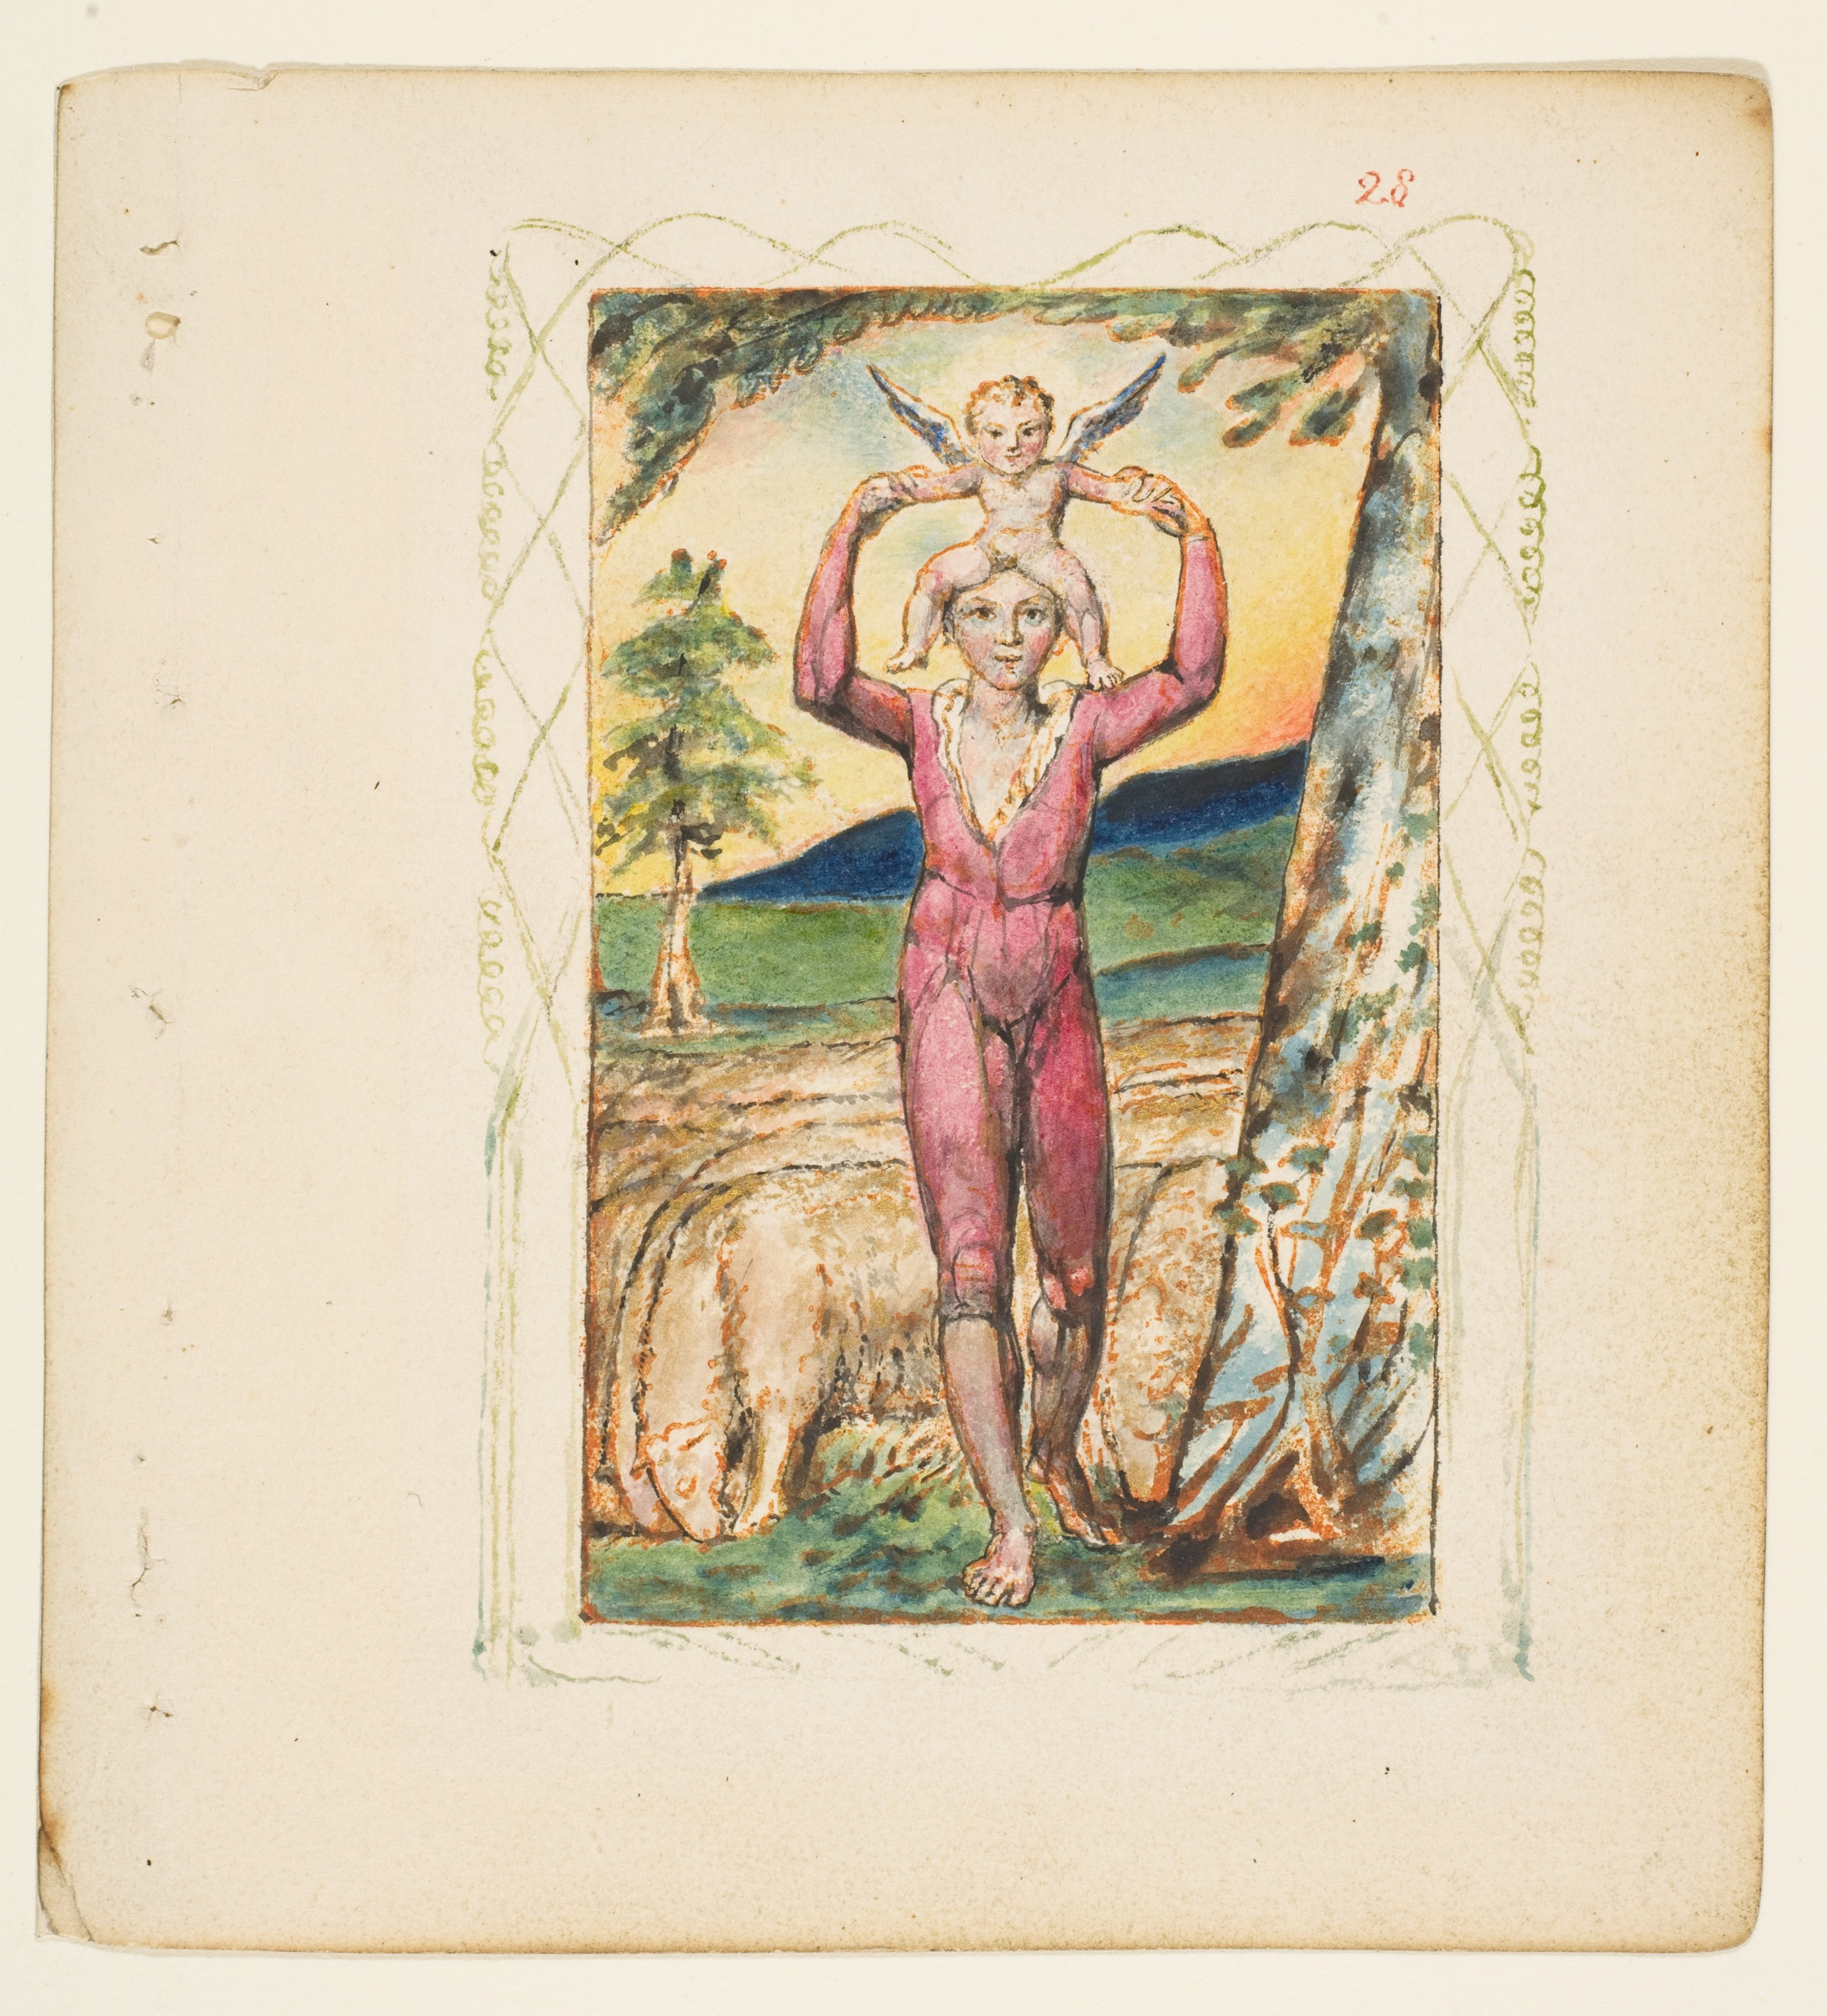 William Blake Songs of Experience